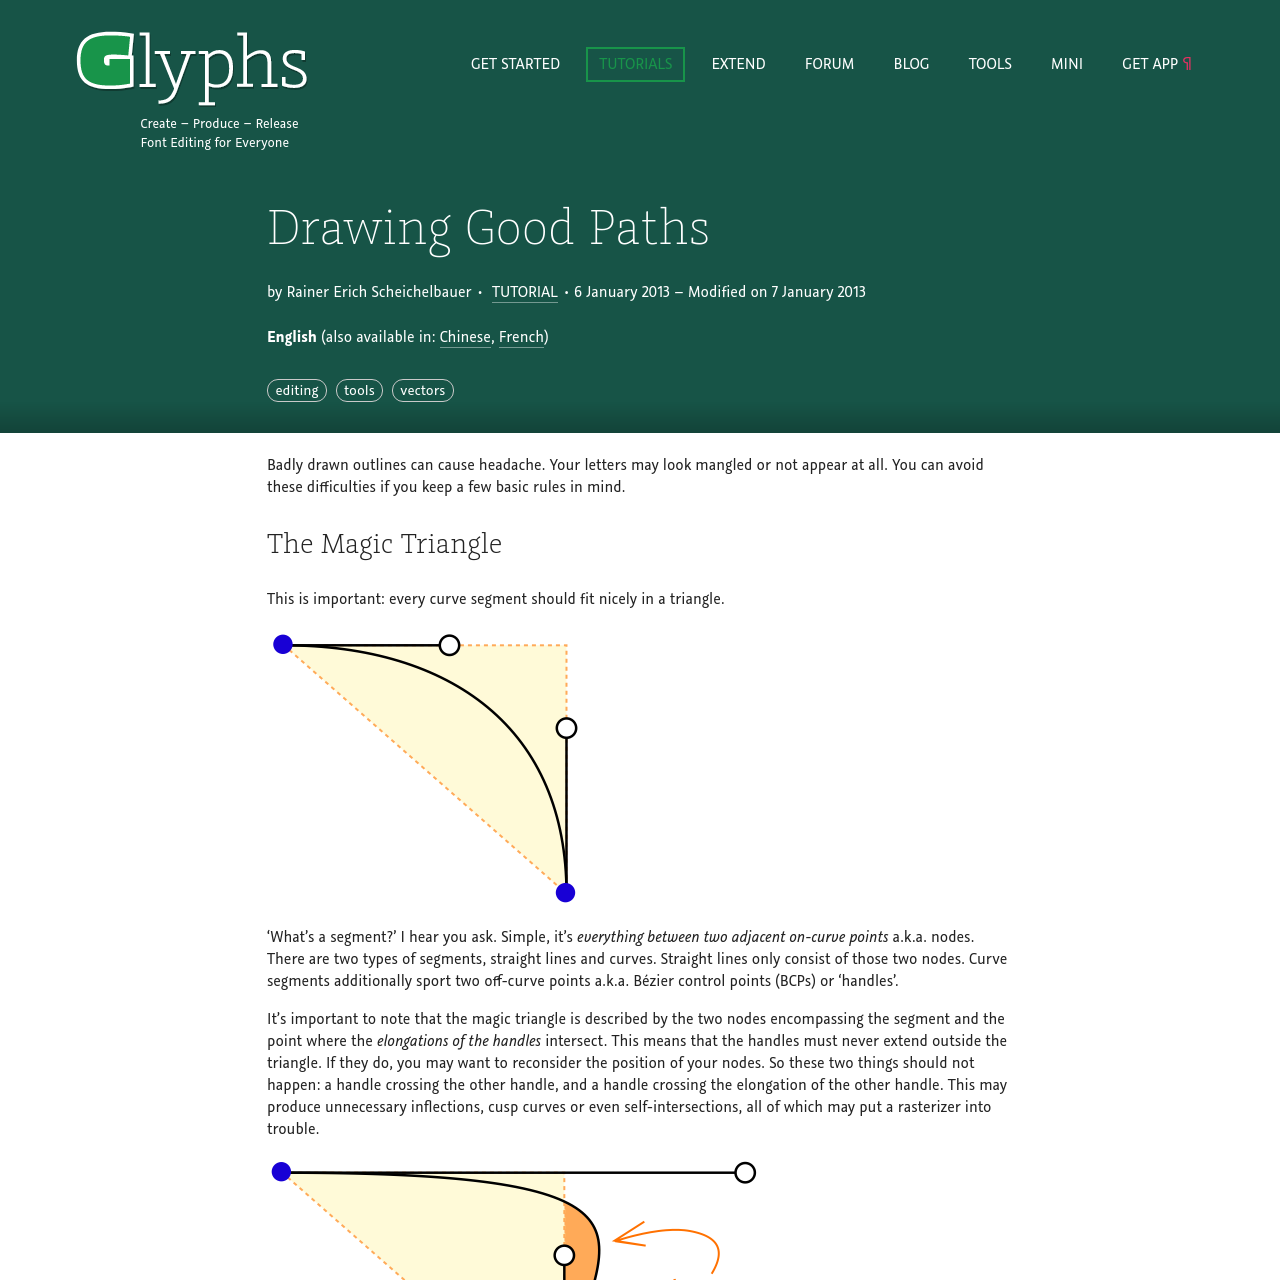 Are na / Drawing Good Paths | Glyphs